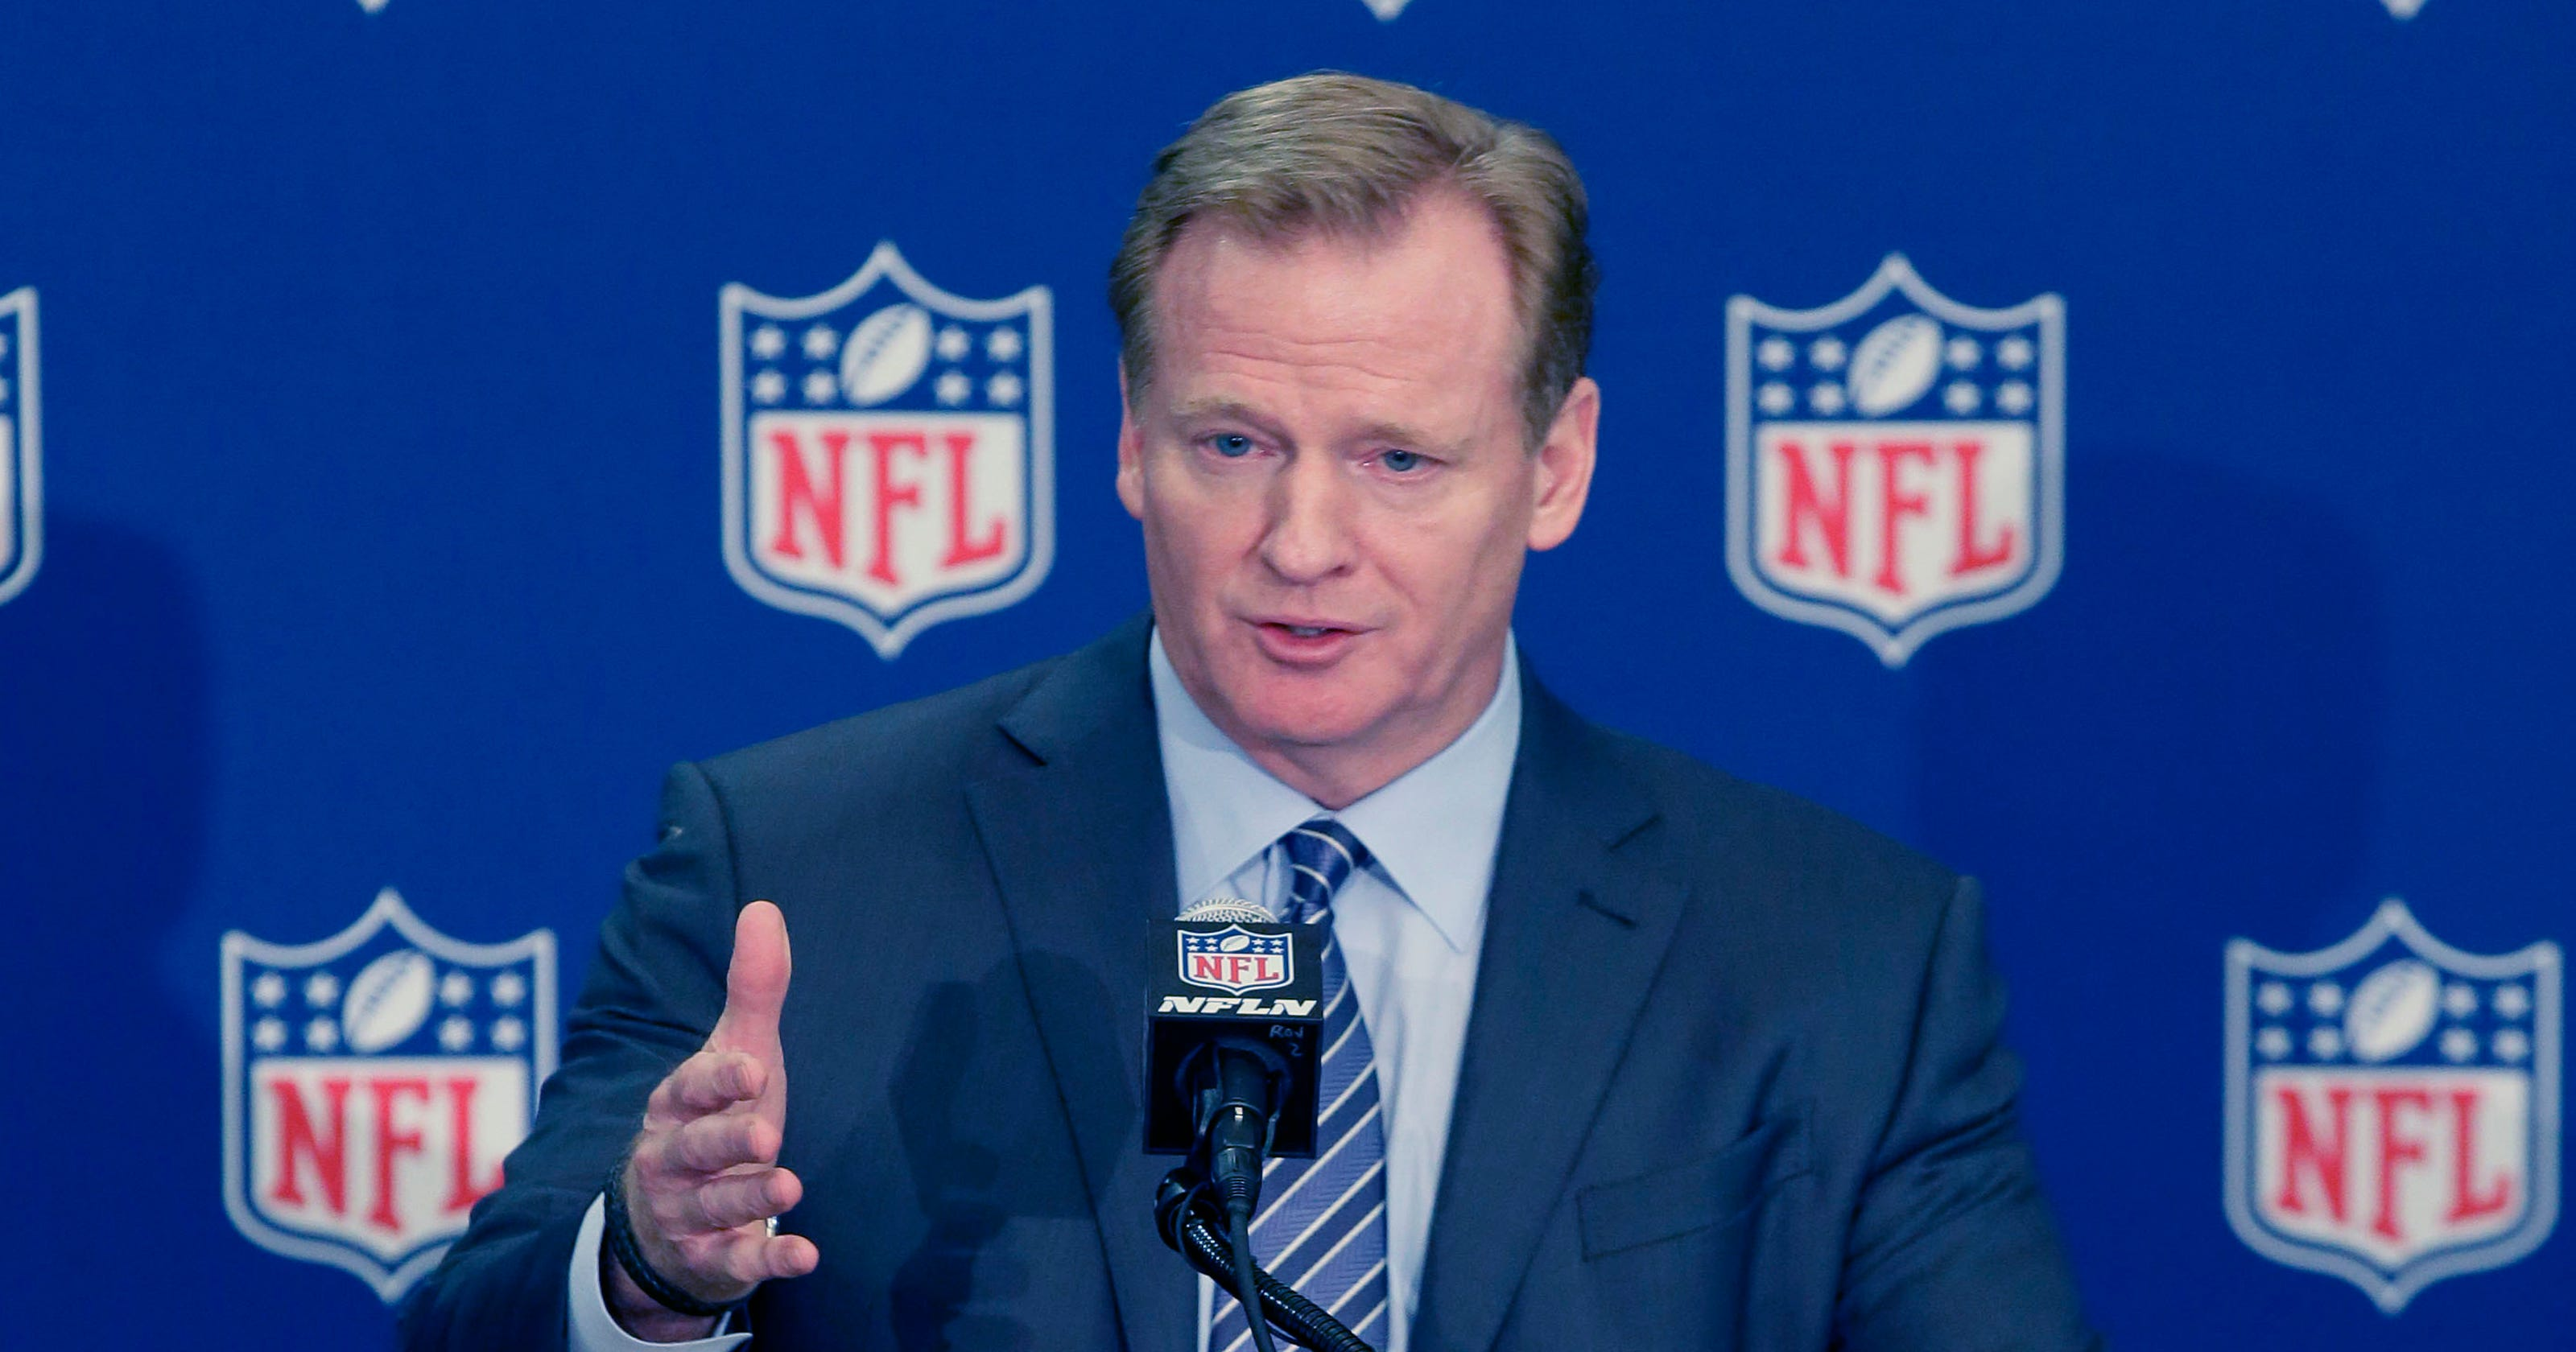 b6ef217eb Roger Goodell s dismissal of Giants-Steelers Deflategate won t play well in  New England